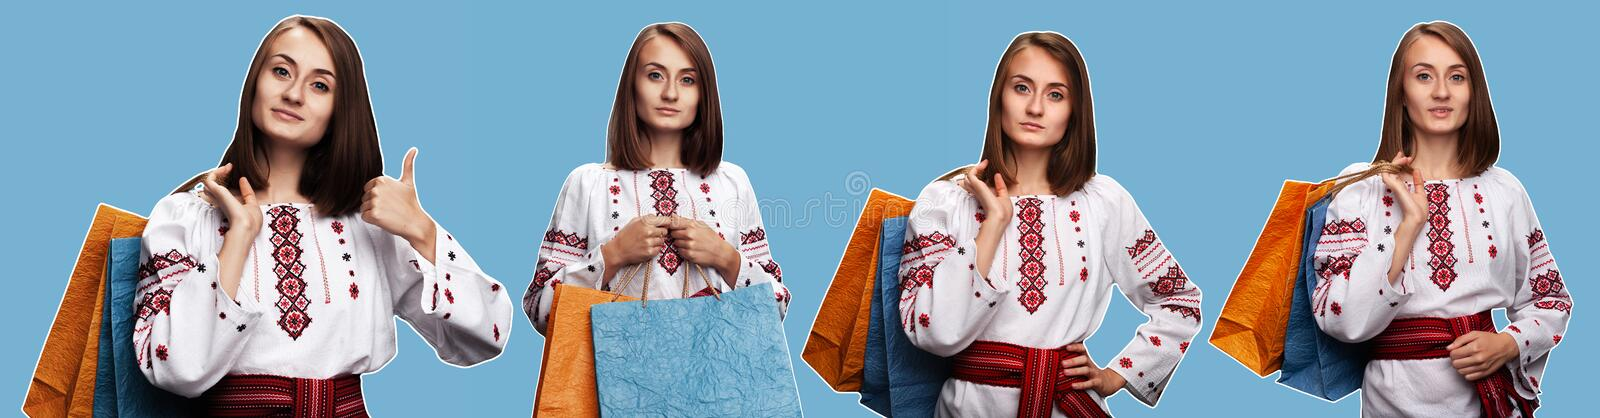 Young girl in the Ukrainian national suit royalty free stock images